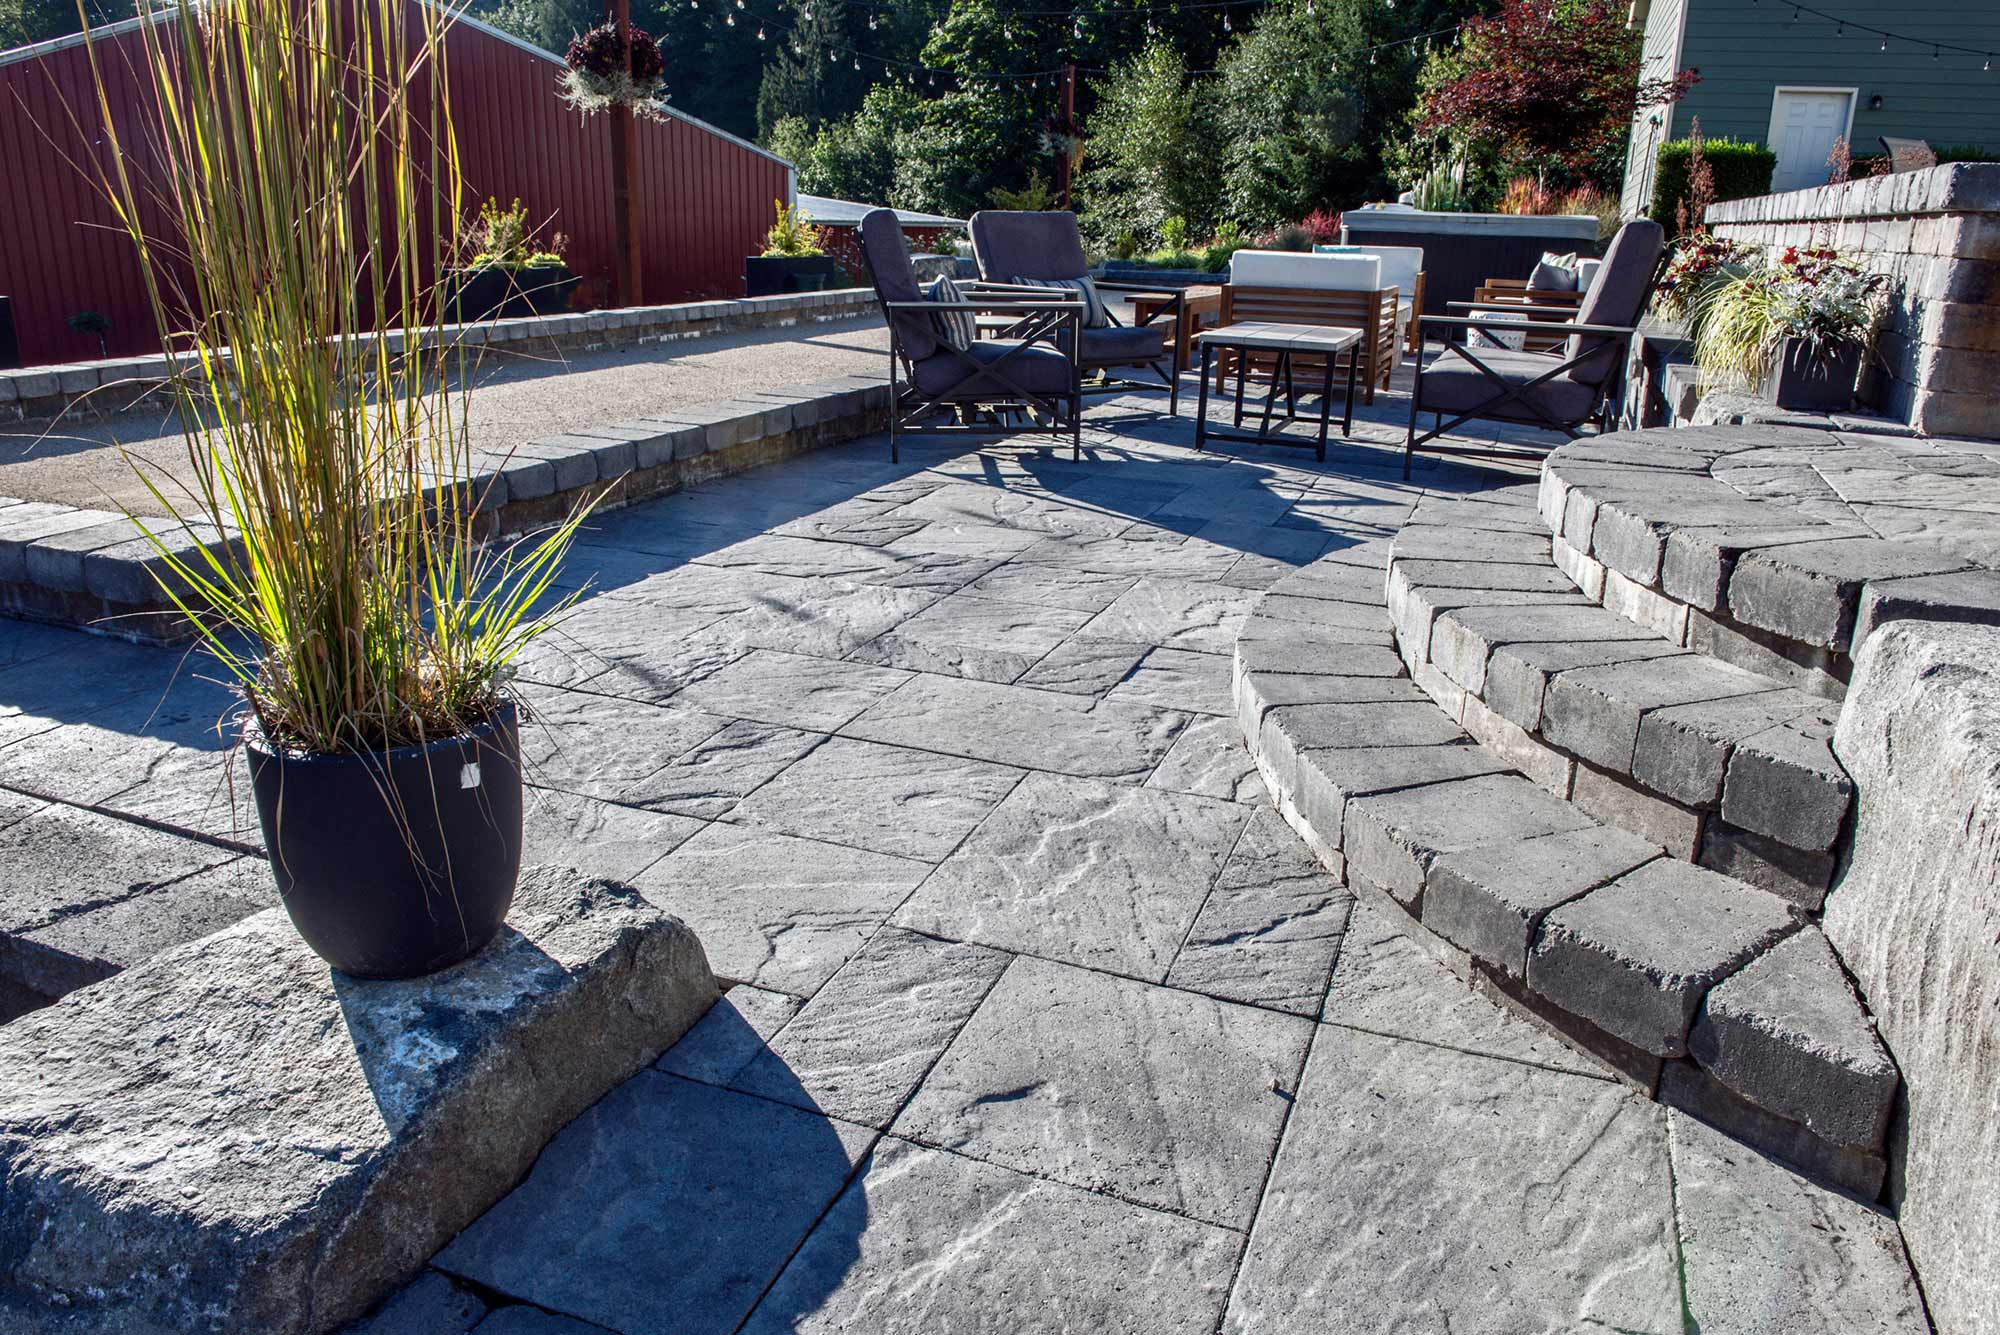 Bocce ball court, paver patio and stairway